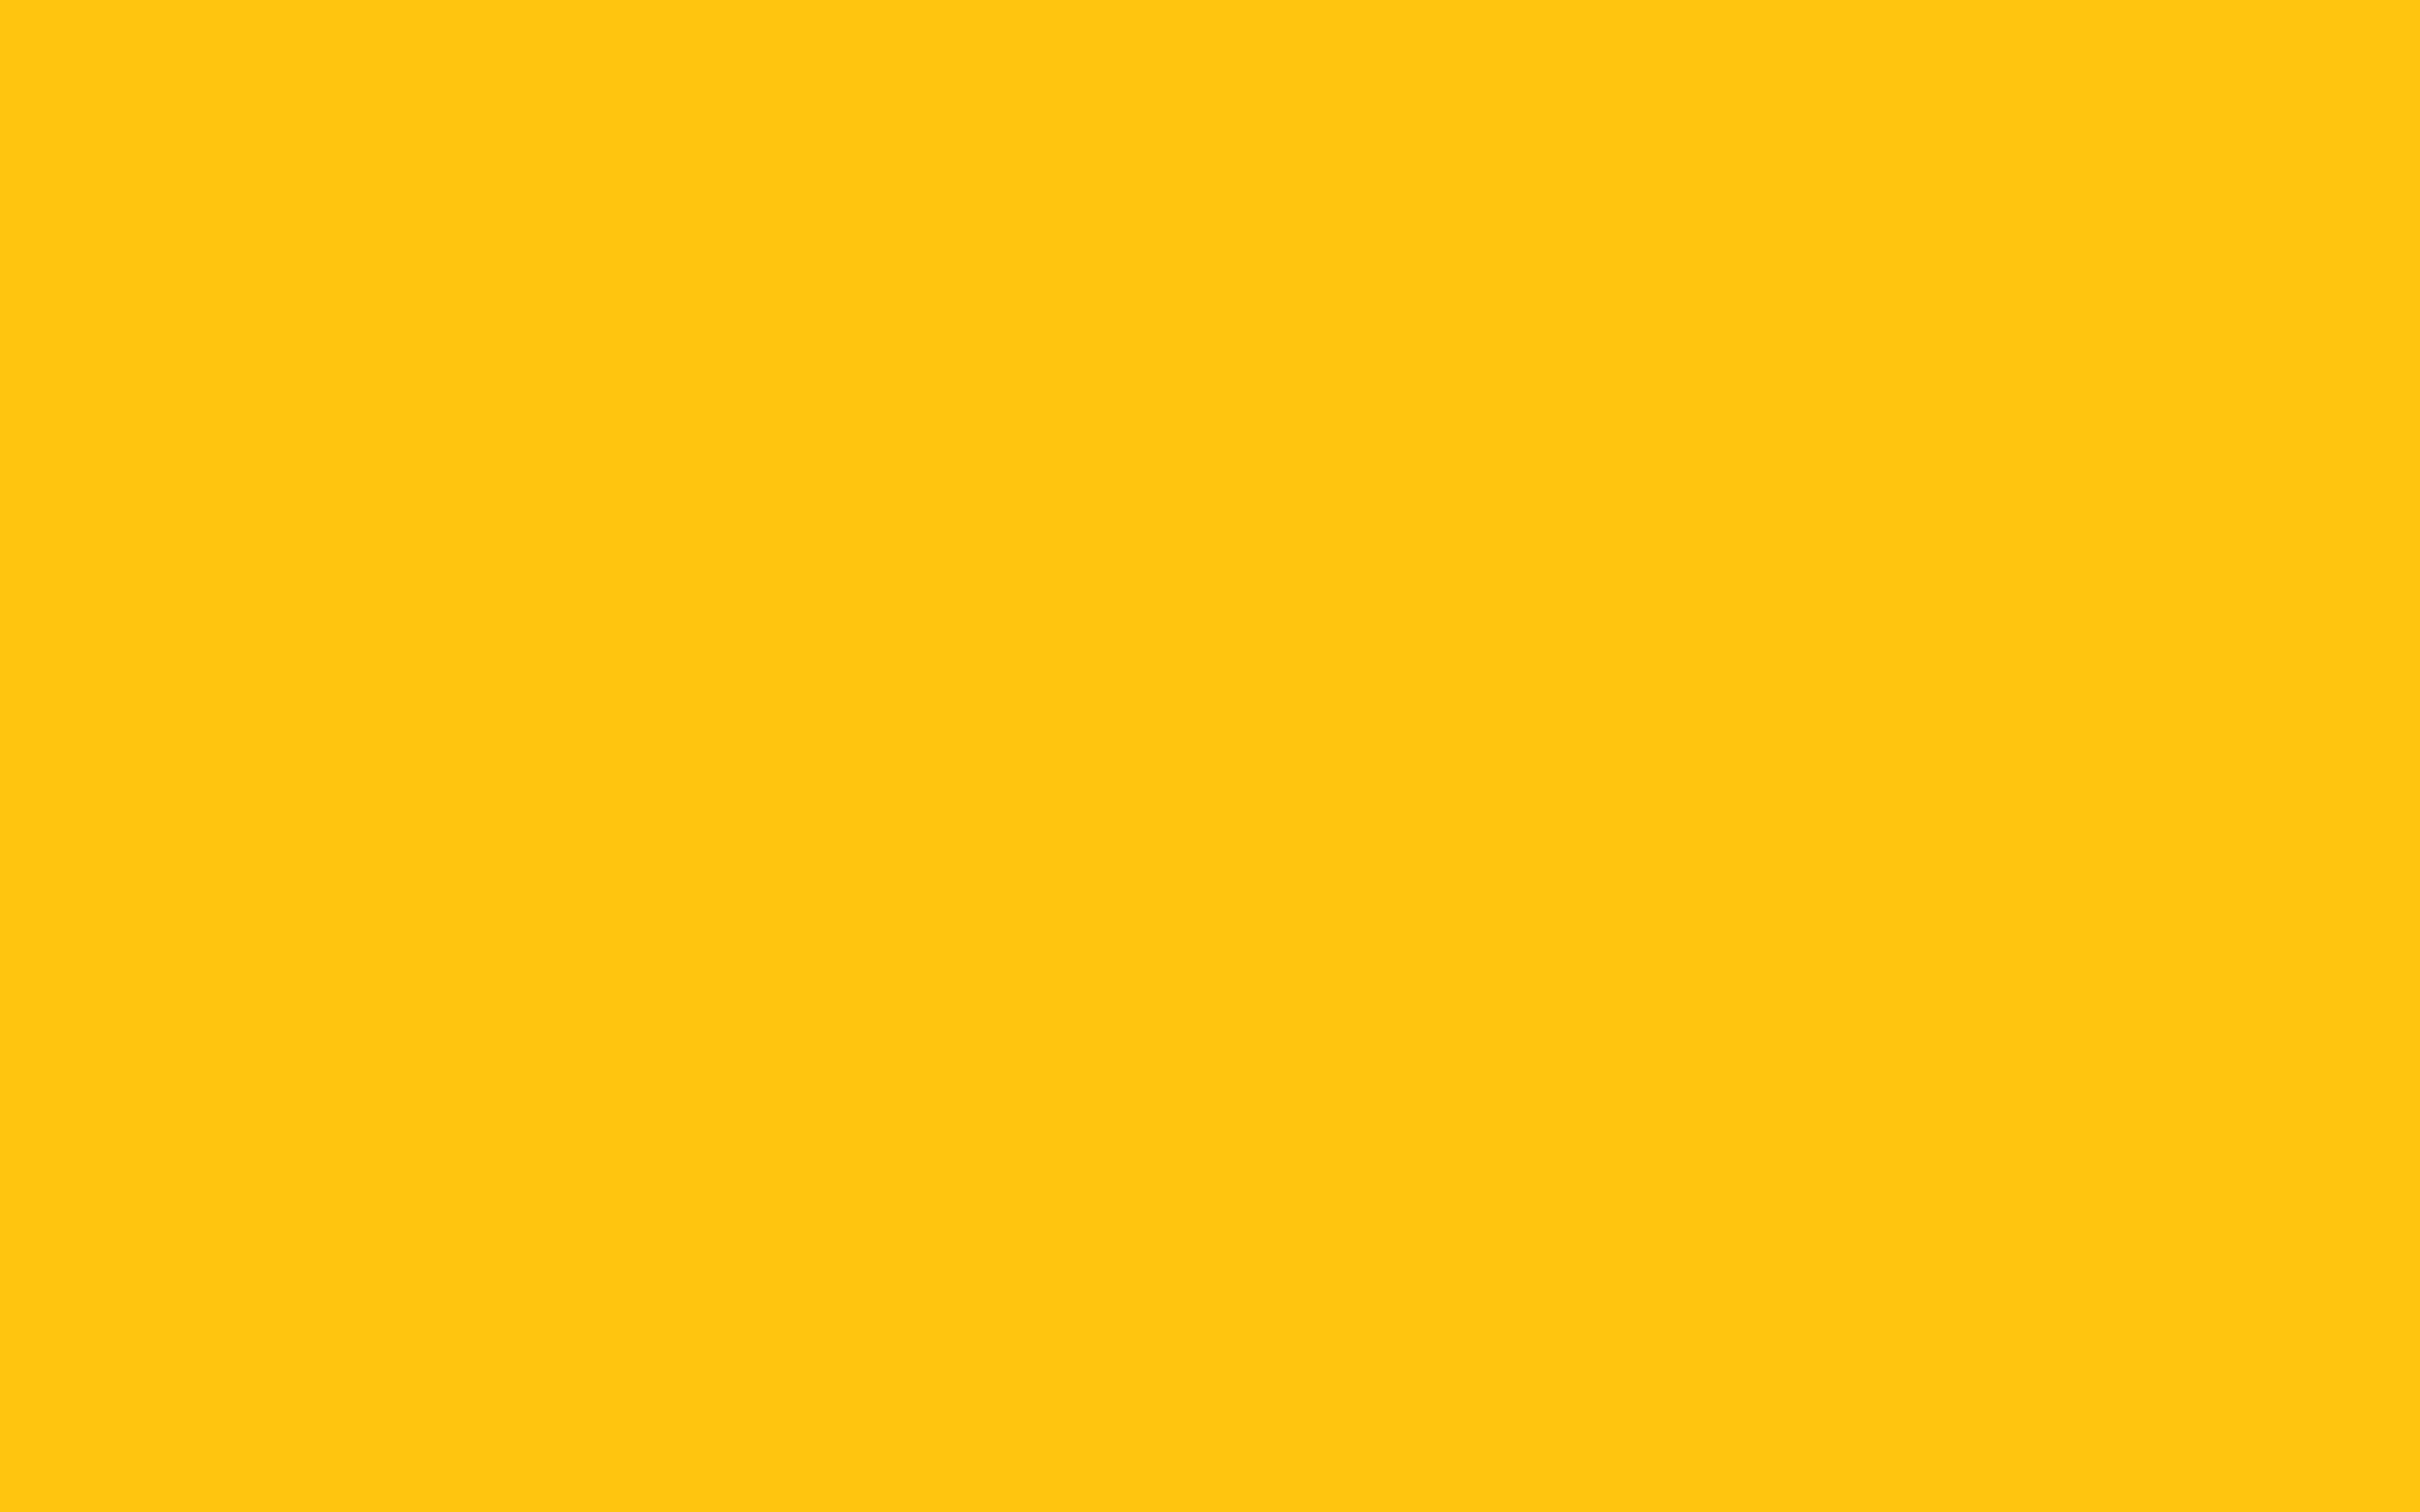 2560x1600 Mikado Yellow Solid Color Background